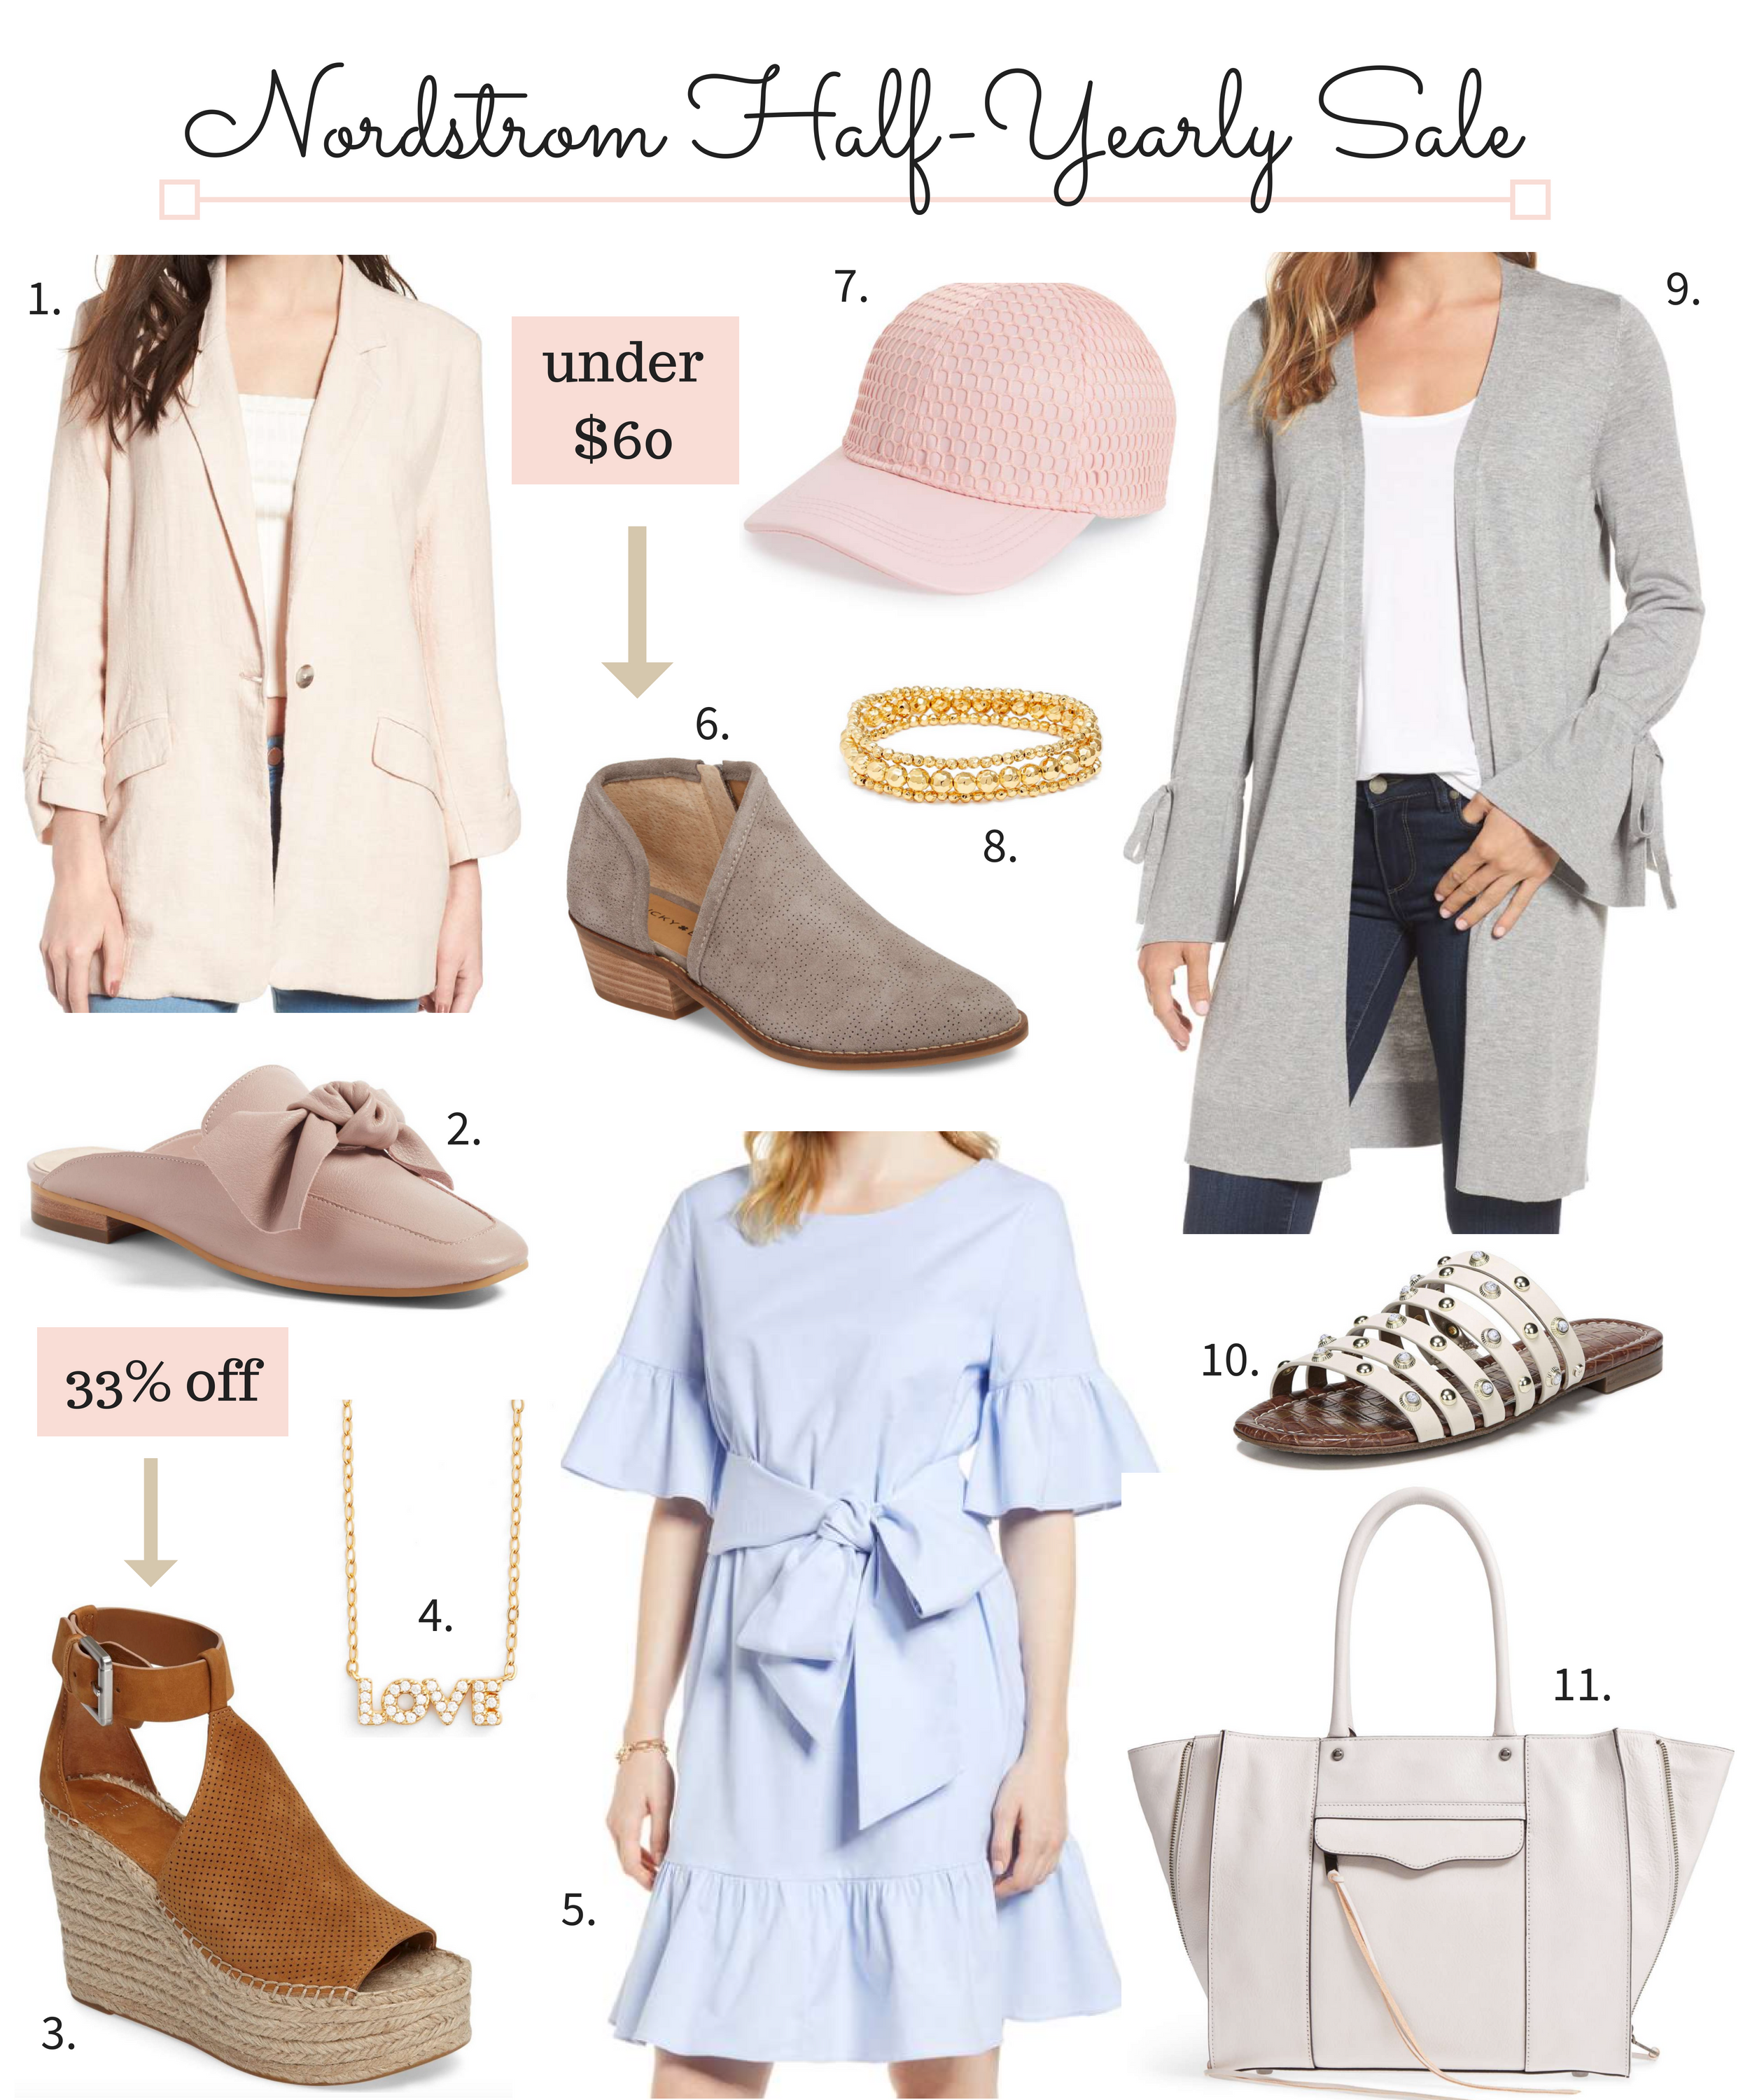 Nordstrom Half-Yearly Sale Picks 2018